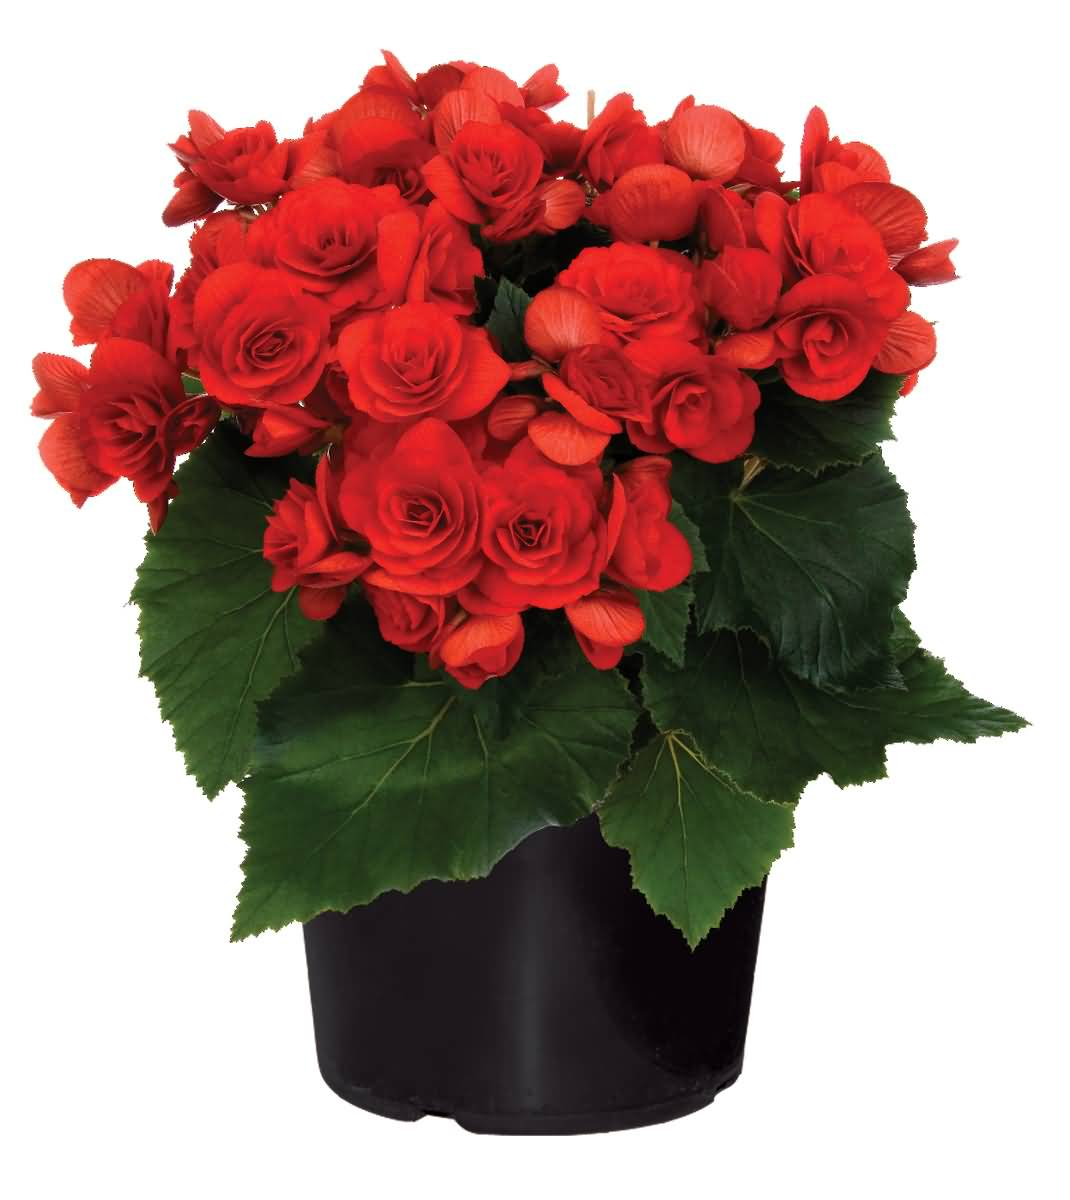 Most Attractive Red Begonia Flower In Vase